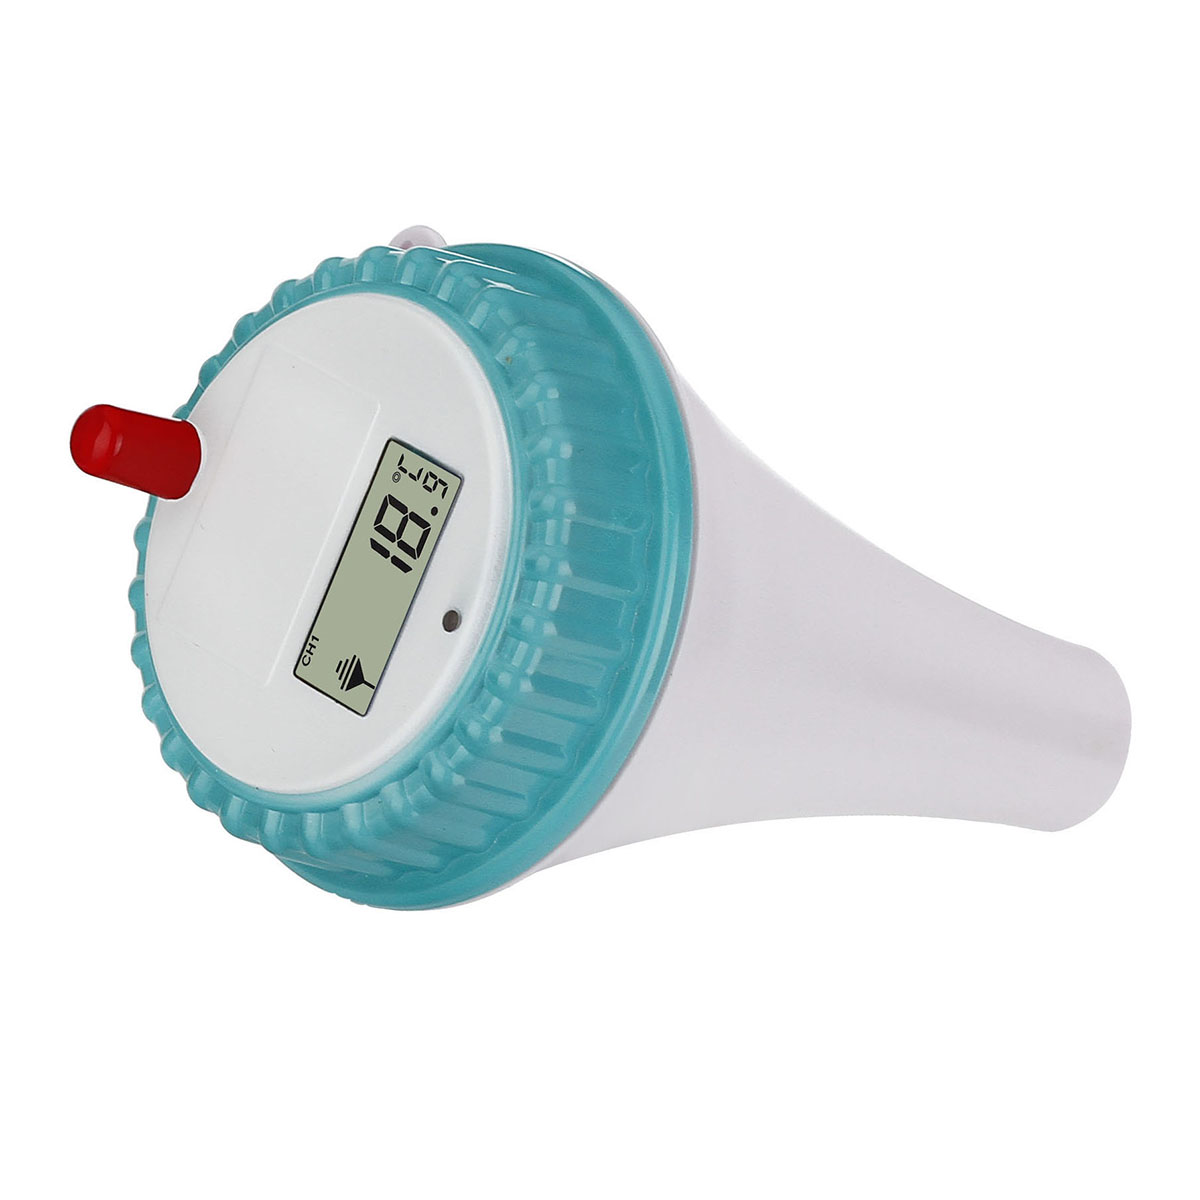 Wireless digital floating swimming pool thermometer temperature remote sensor ebay for Good temperature for swimming pool